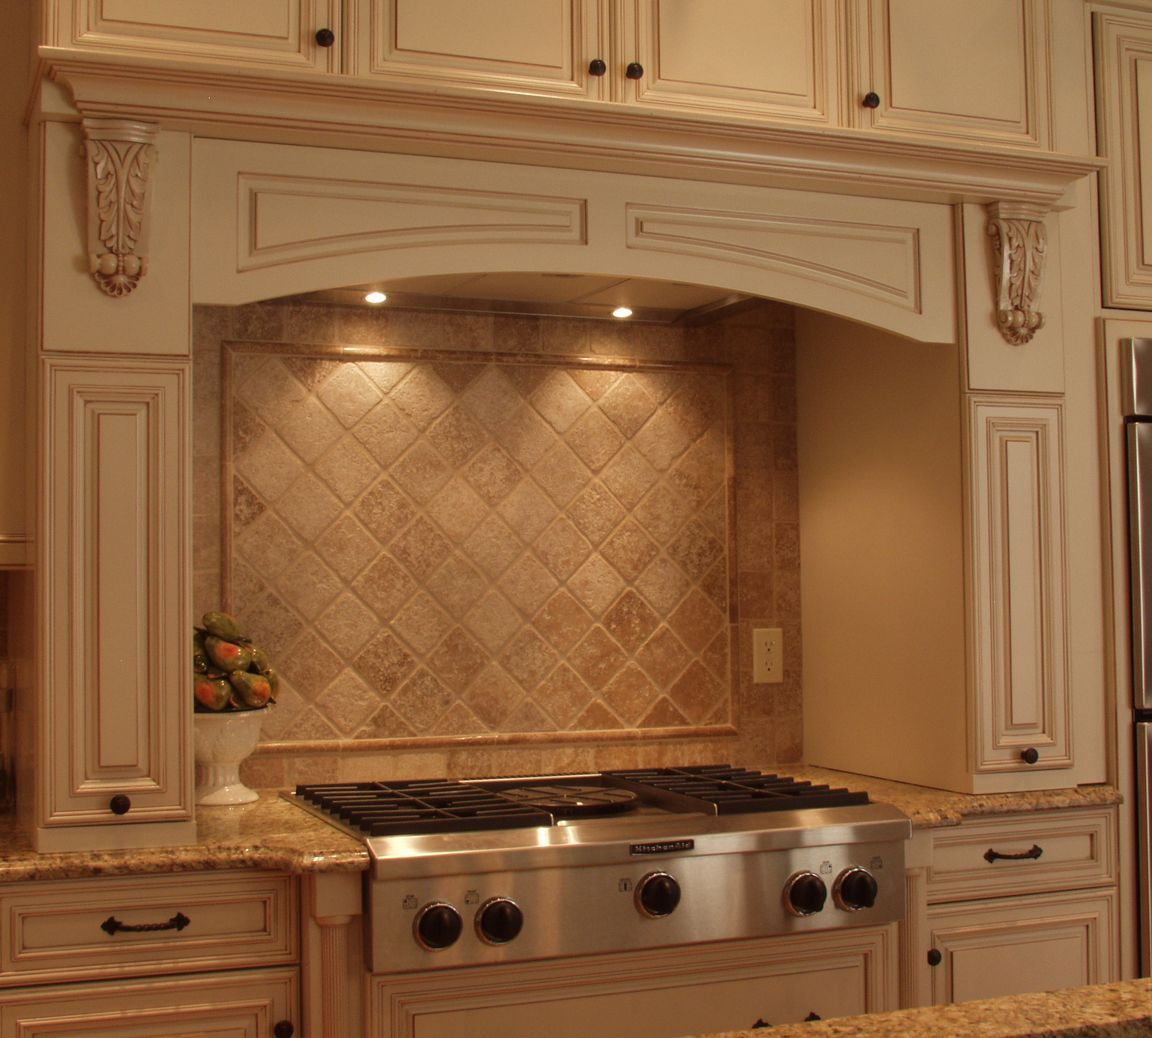 "Kitchen Hoods  Kitchen Hood  ""we're Building A House. Kitchen Living Aldi. Quotes About The Kitchen And Cooking. Tiny Kitchen Design Photos. Kitchen Garden White House. Kitchen Redo With Oak Cabinets. Kitchenaid Natural Gas Conversion. B And Q Kitchen Tiles. Kitchen Sink For Mobile Home"